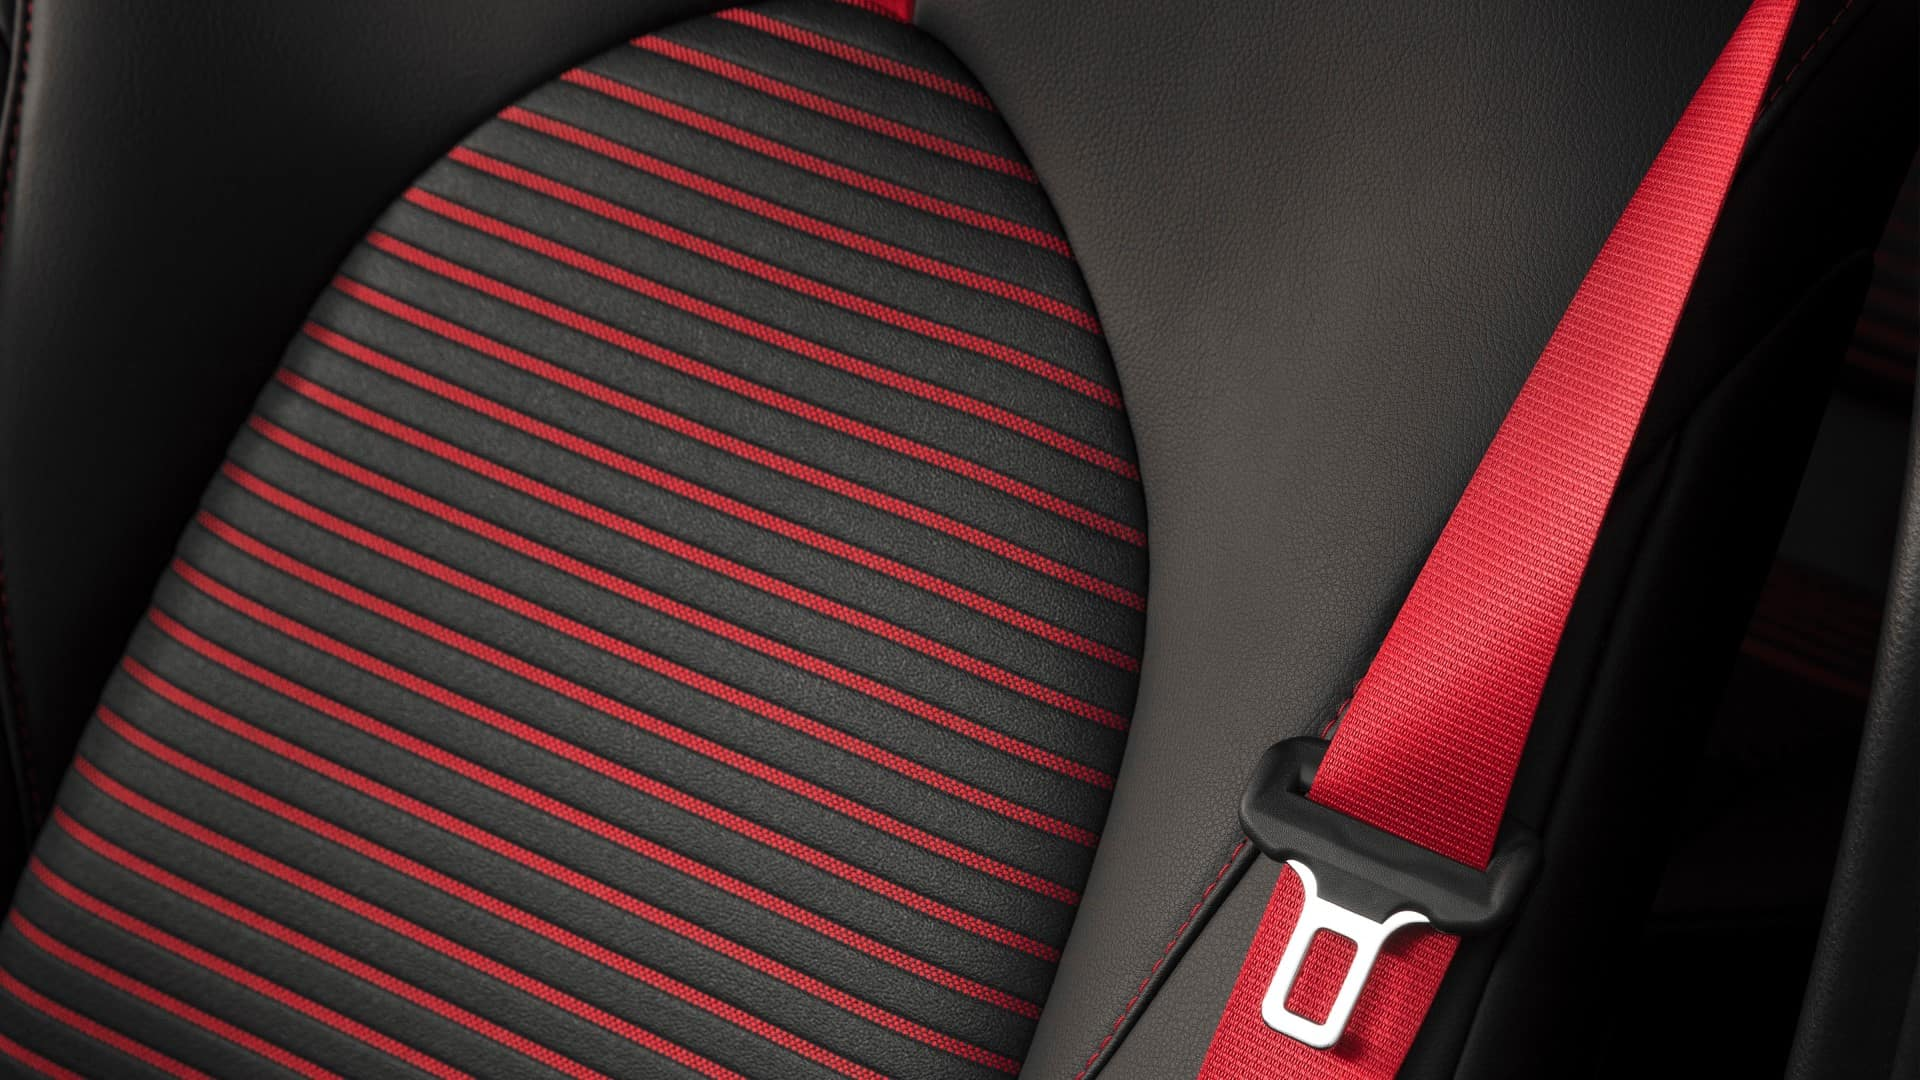 Toyota_Camry_TRD_Red_And_Black_Seat